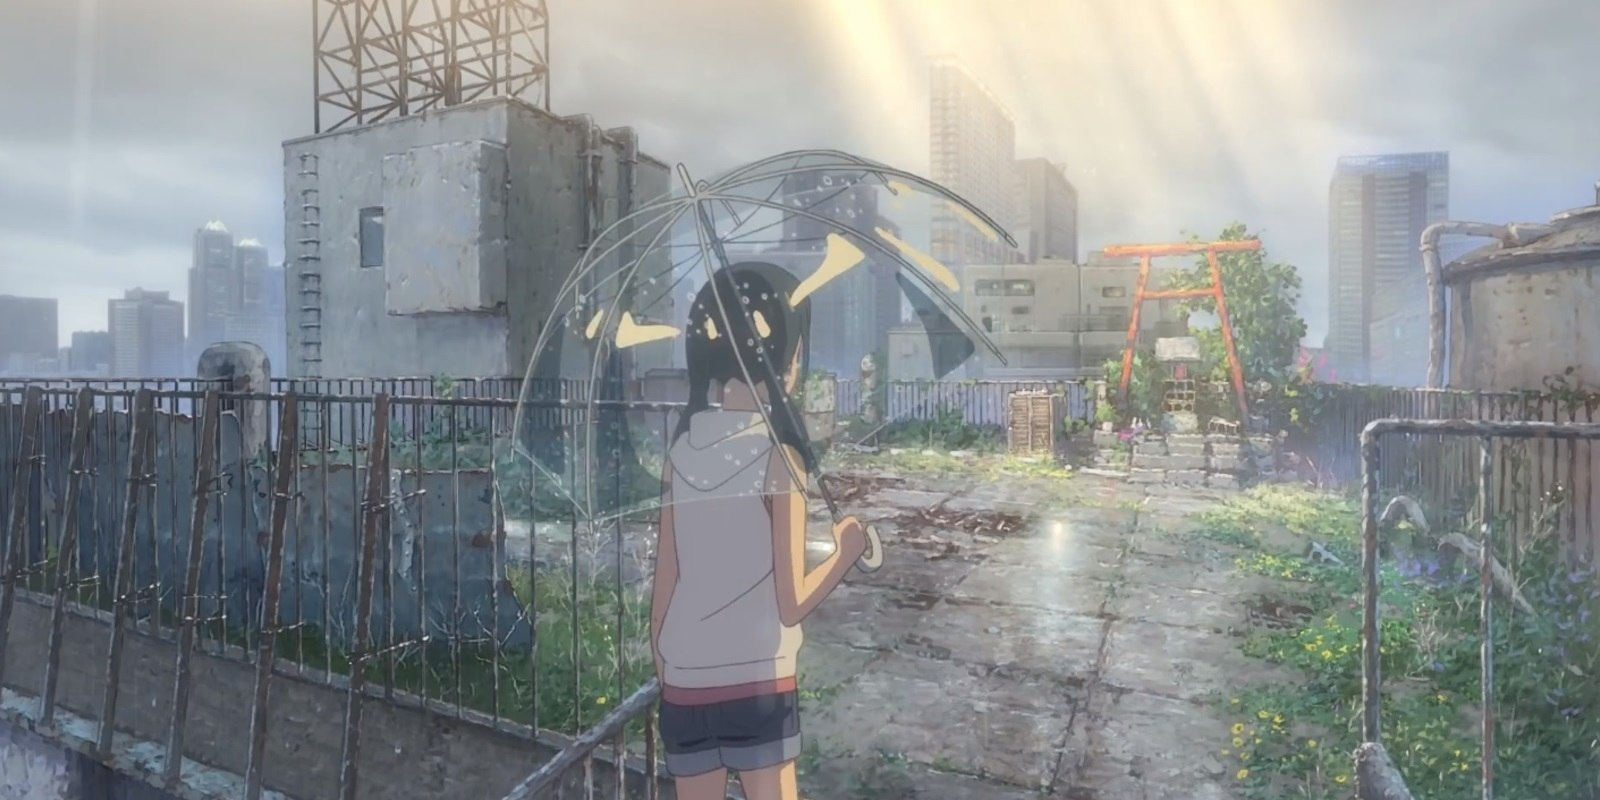 Weathering With You Anime Is Terrifying, But Is It Meant to Be?